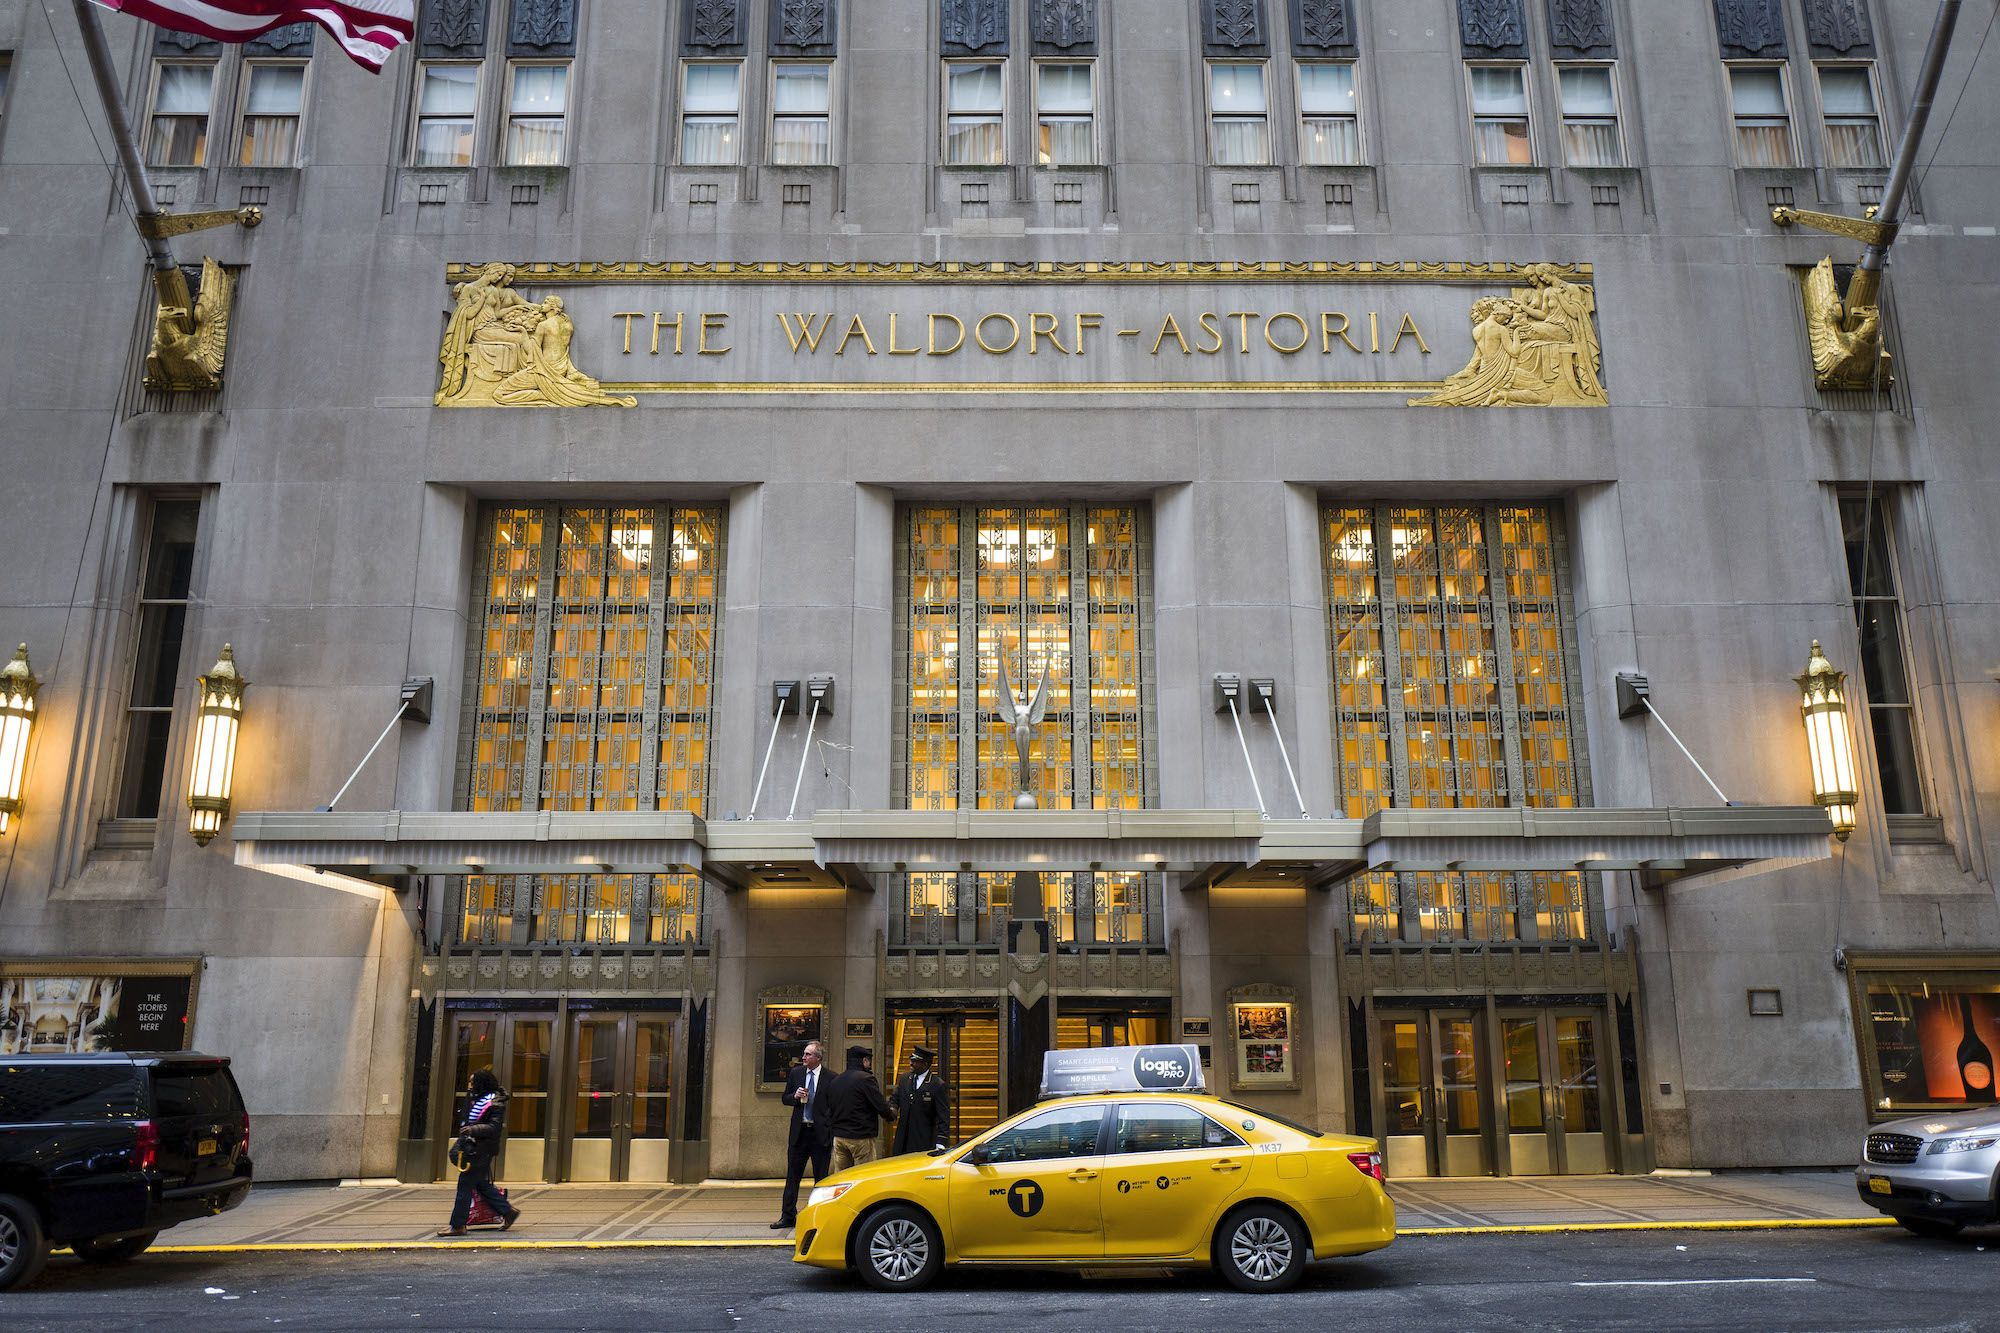 Waldorf Astoria New York To Auction Off Rare Pieces From Its Royal Suite